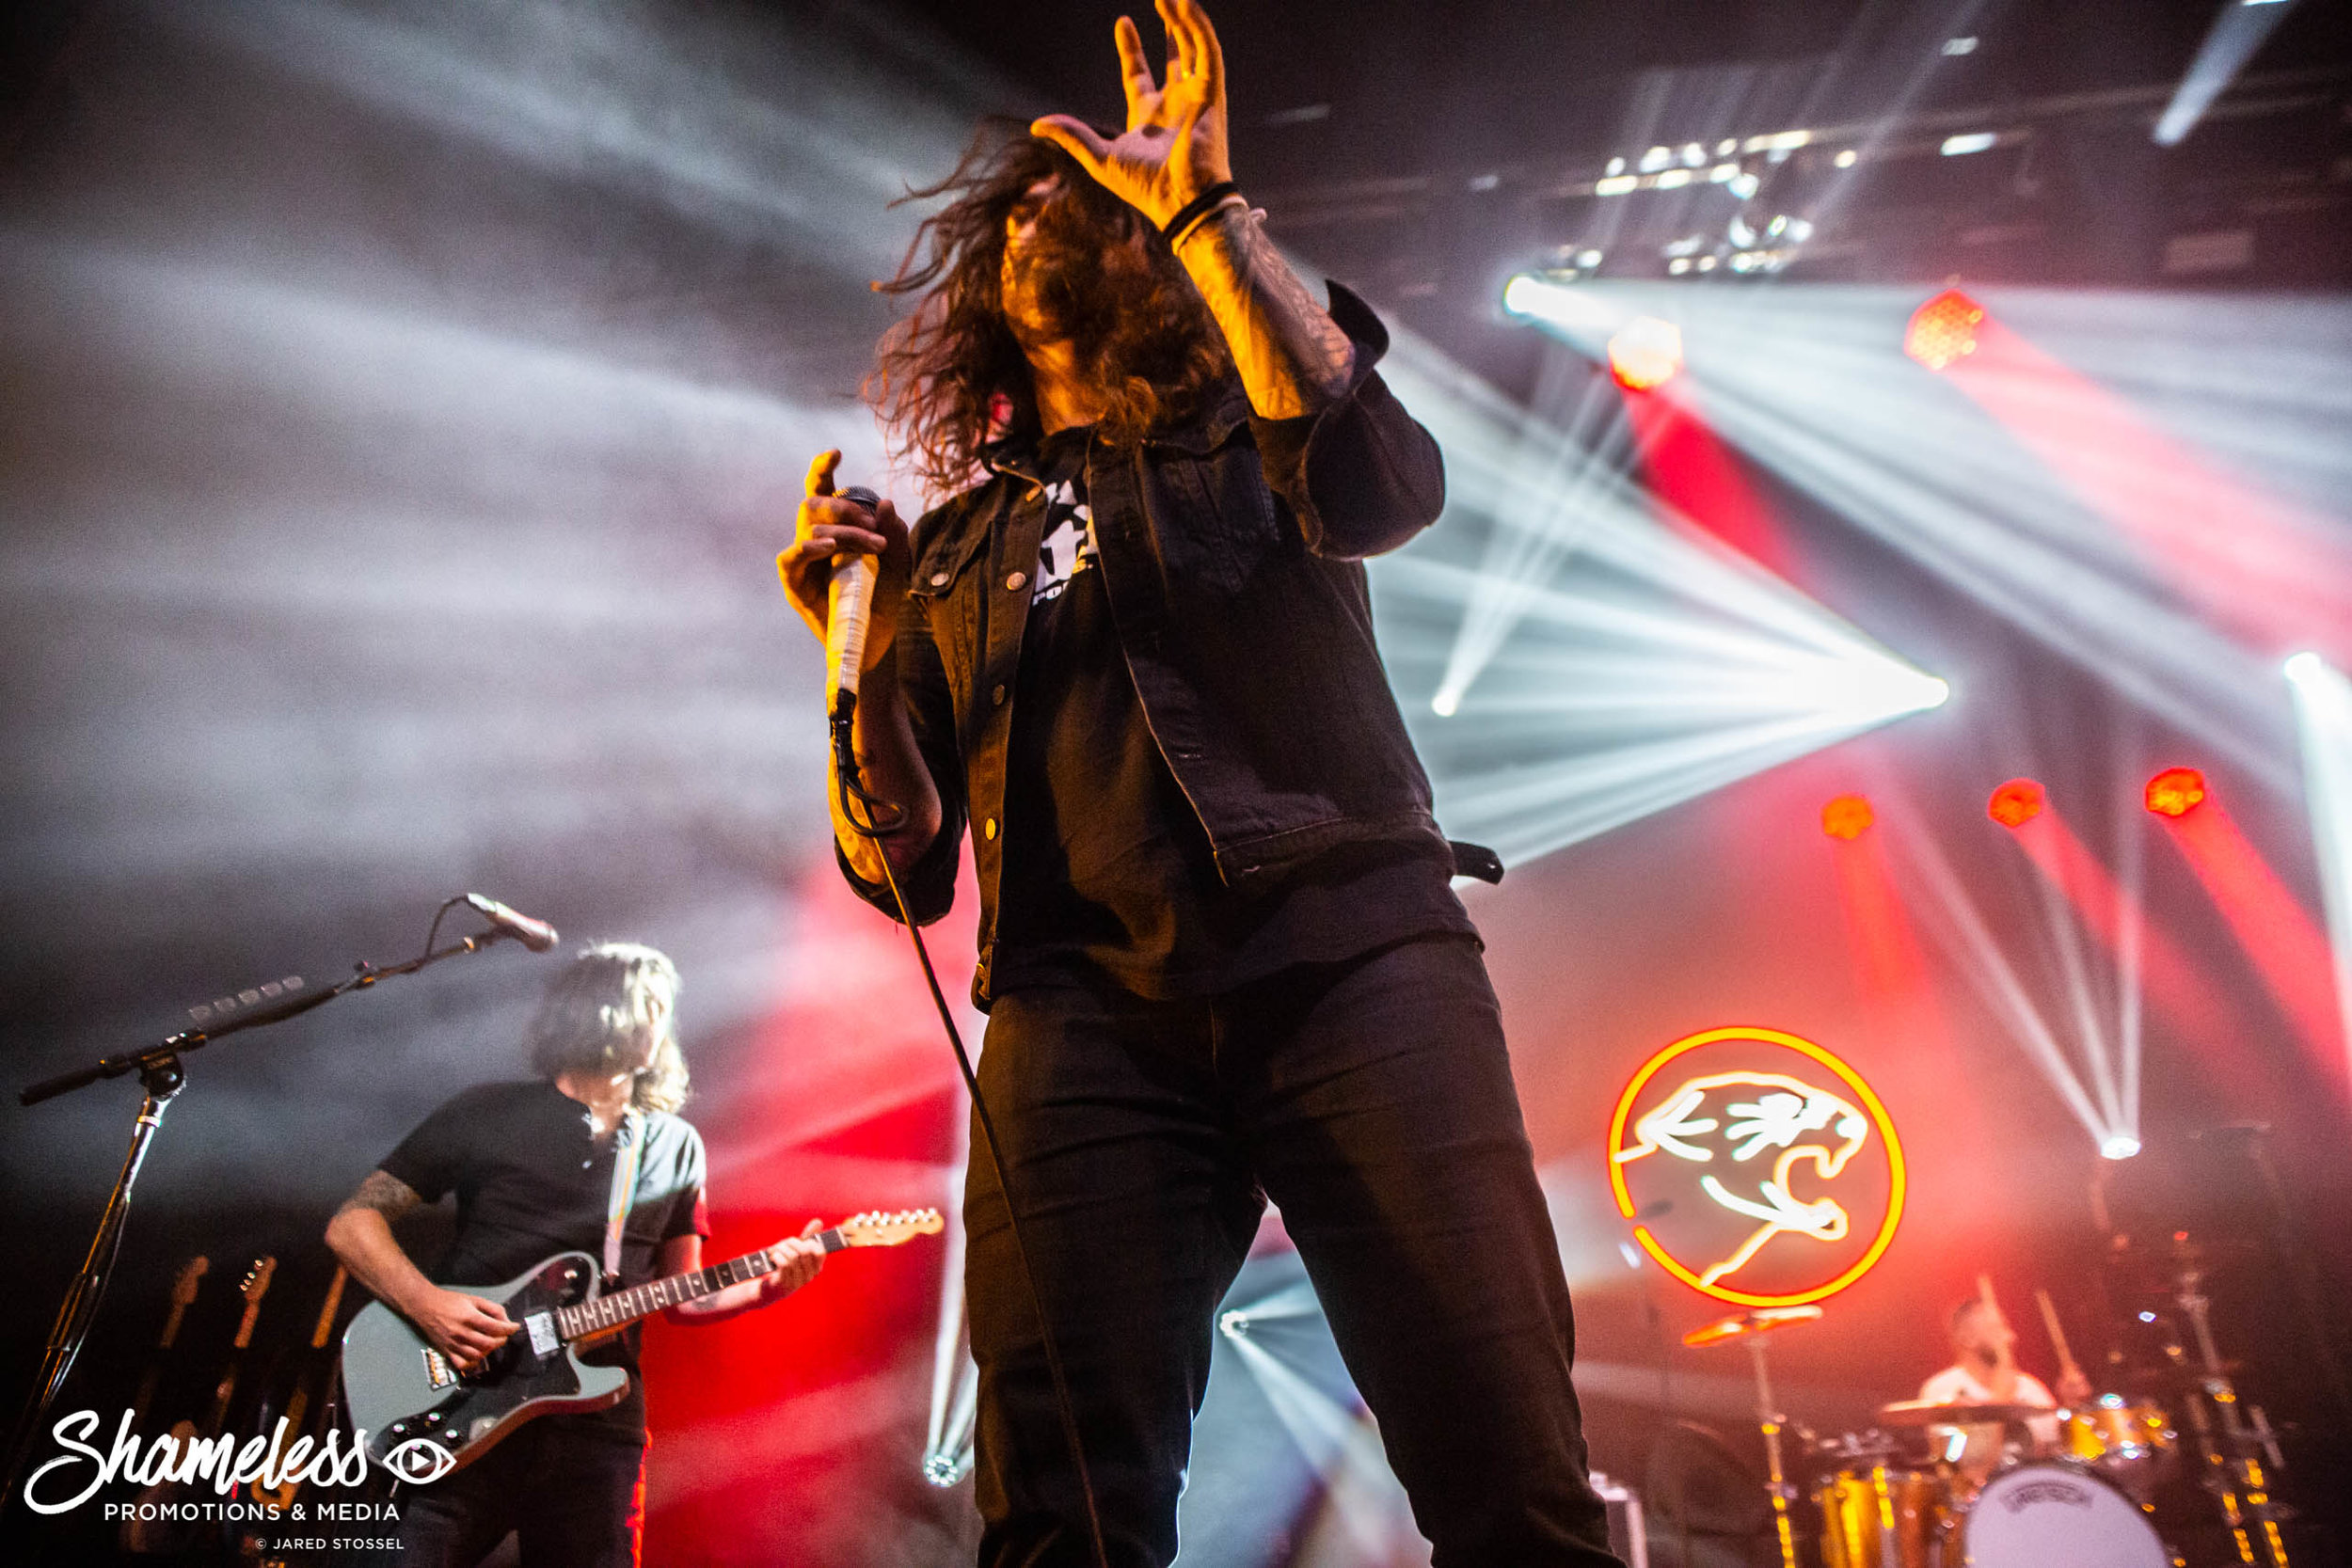 Taking Back Sunday performing at The Warfield in San Francisco, CA. April 14, 2019. Photo Credit: Jared Stossel